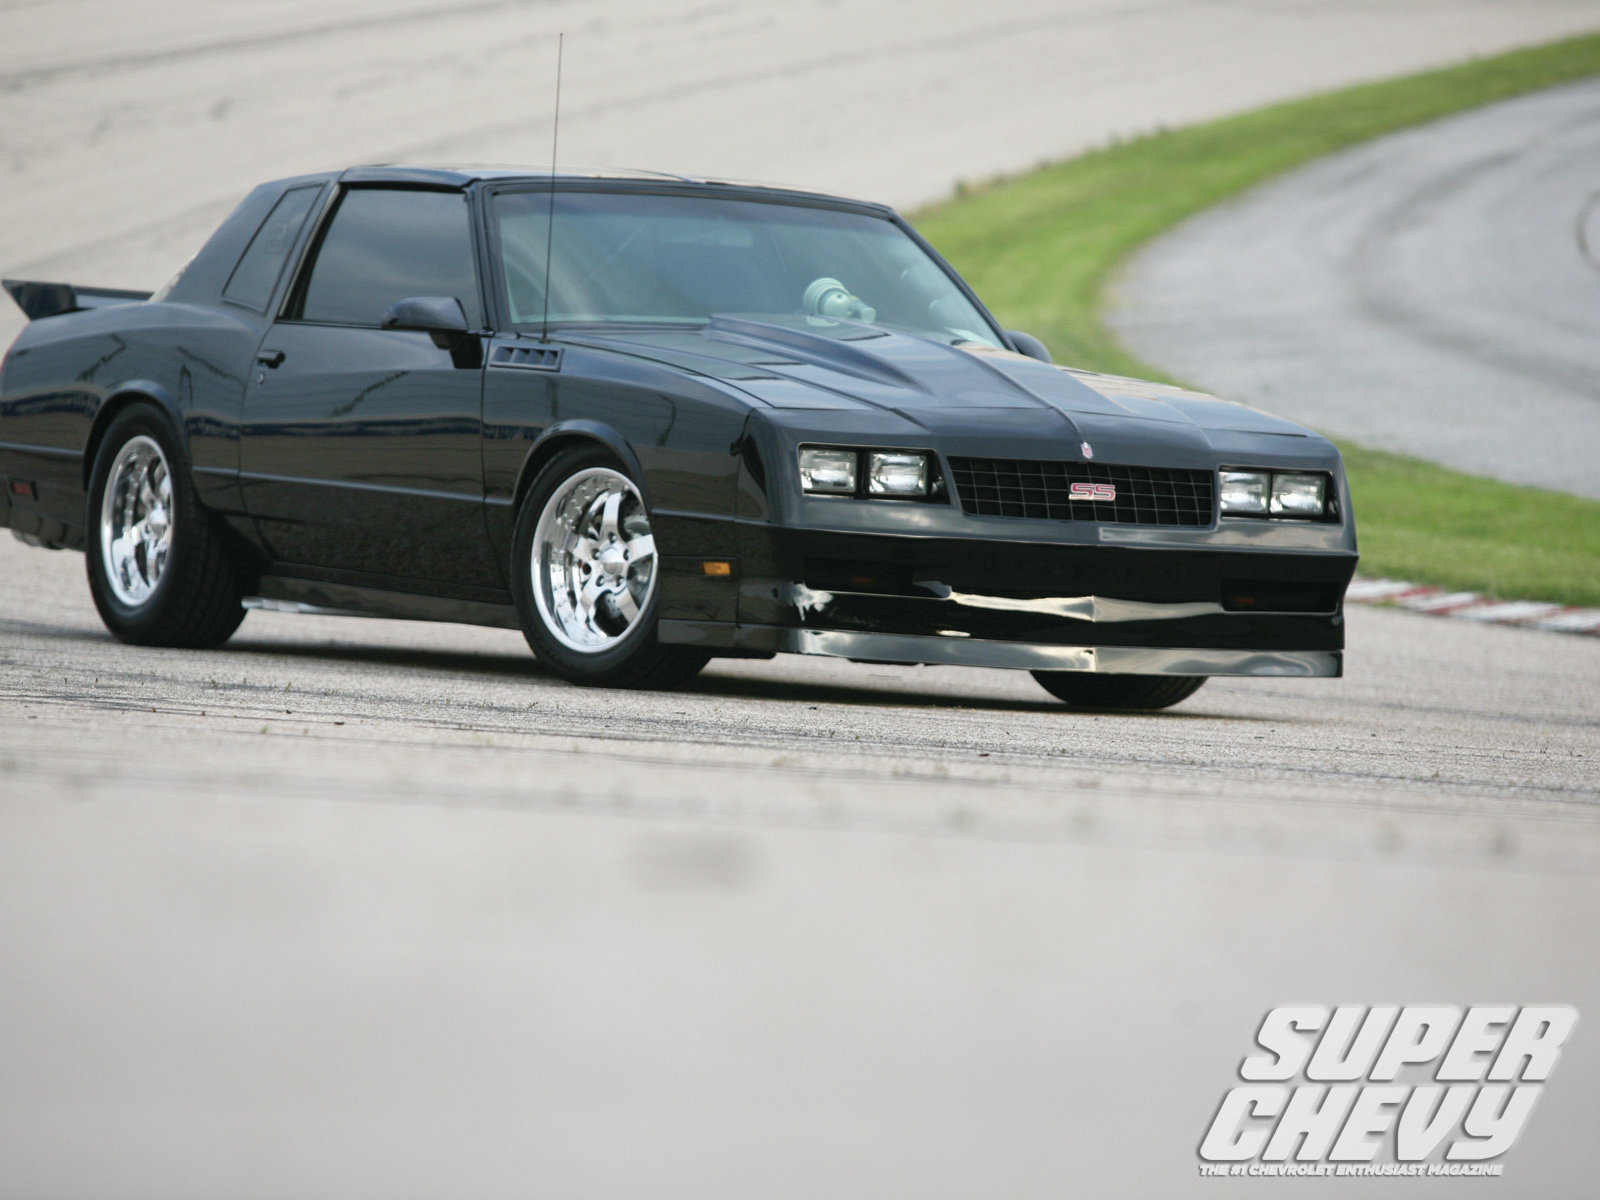 Chevrolet monte carlo muscle hot rod rods d wallpaper - Monte carlo movie wallpaper ...